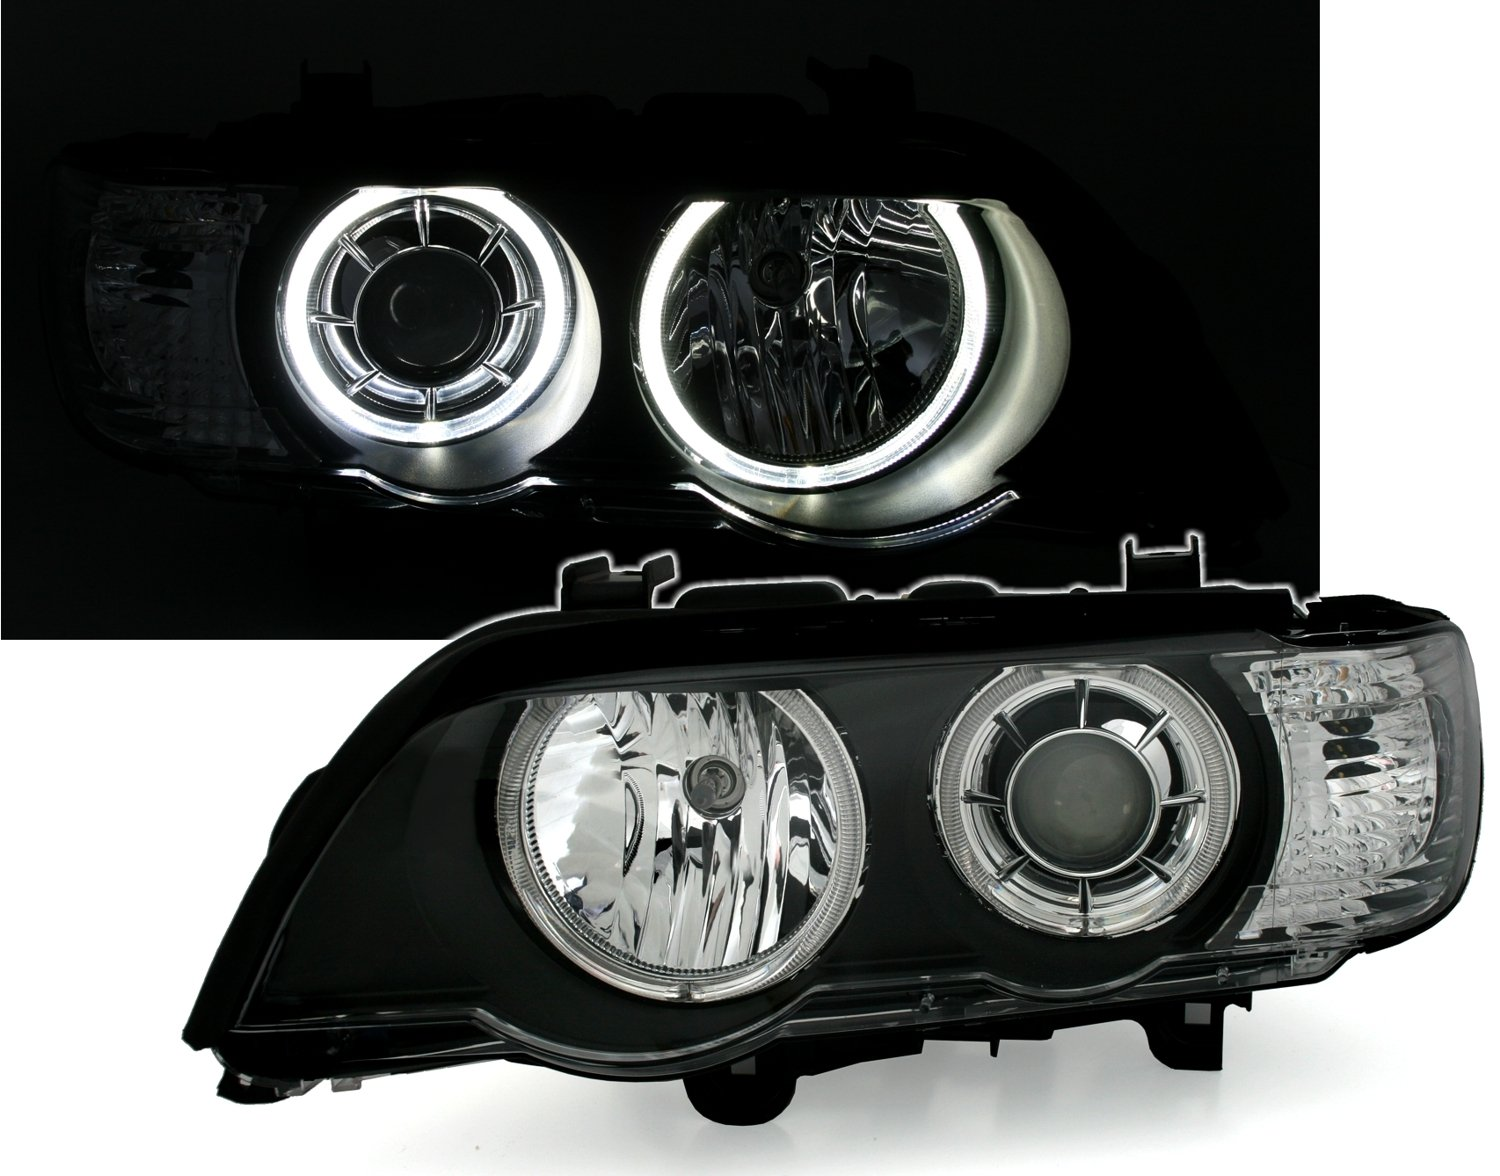 KG DEPO Angel Eyes Faros Set Negro con LED Wei/ã/ÿen Anillos de luz AD Tuning GmbH /& Co